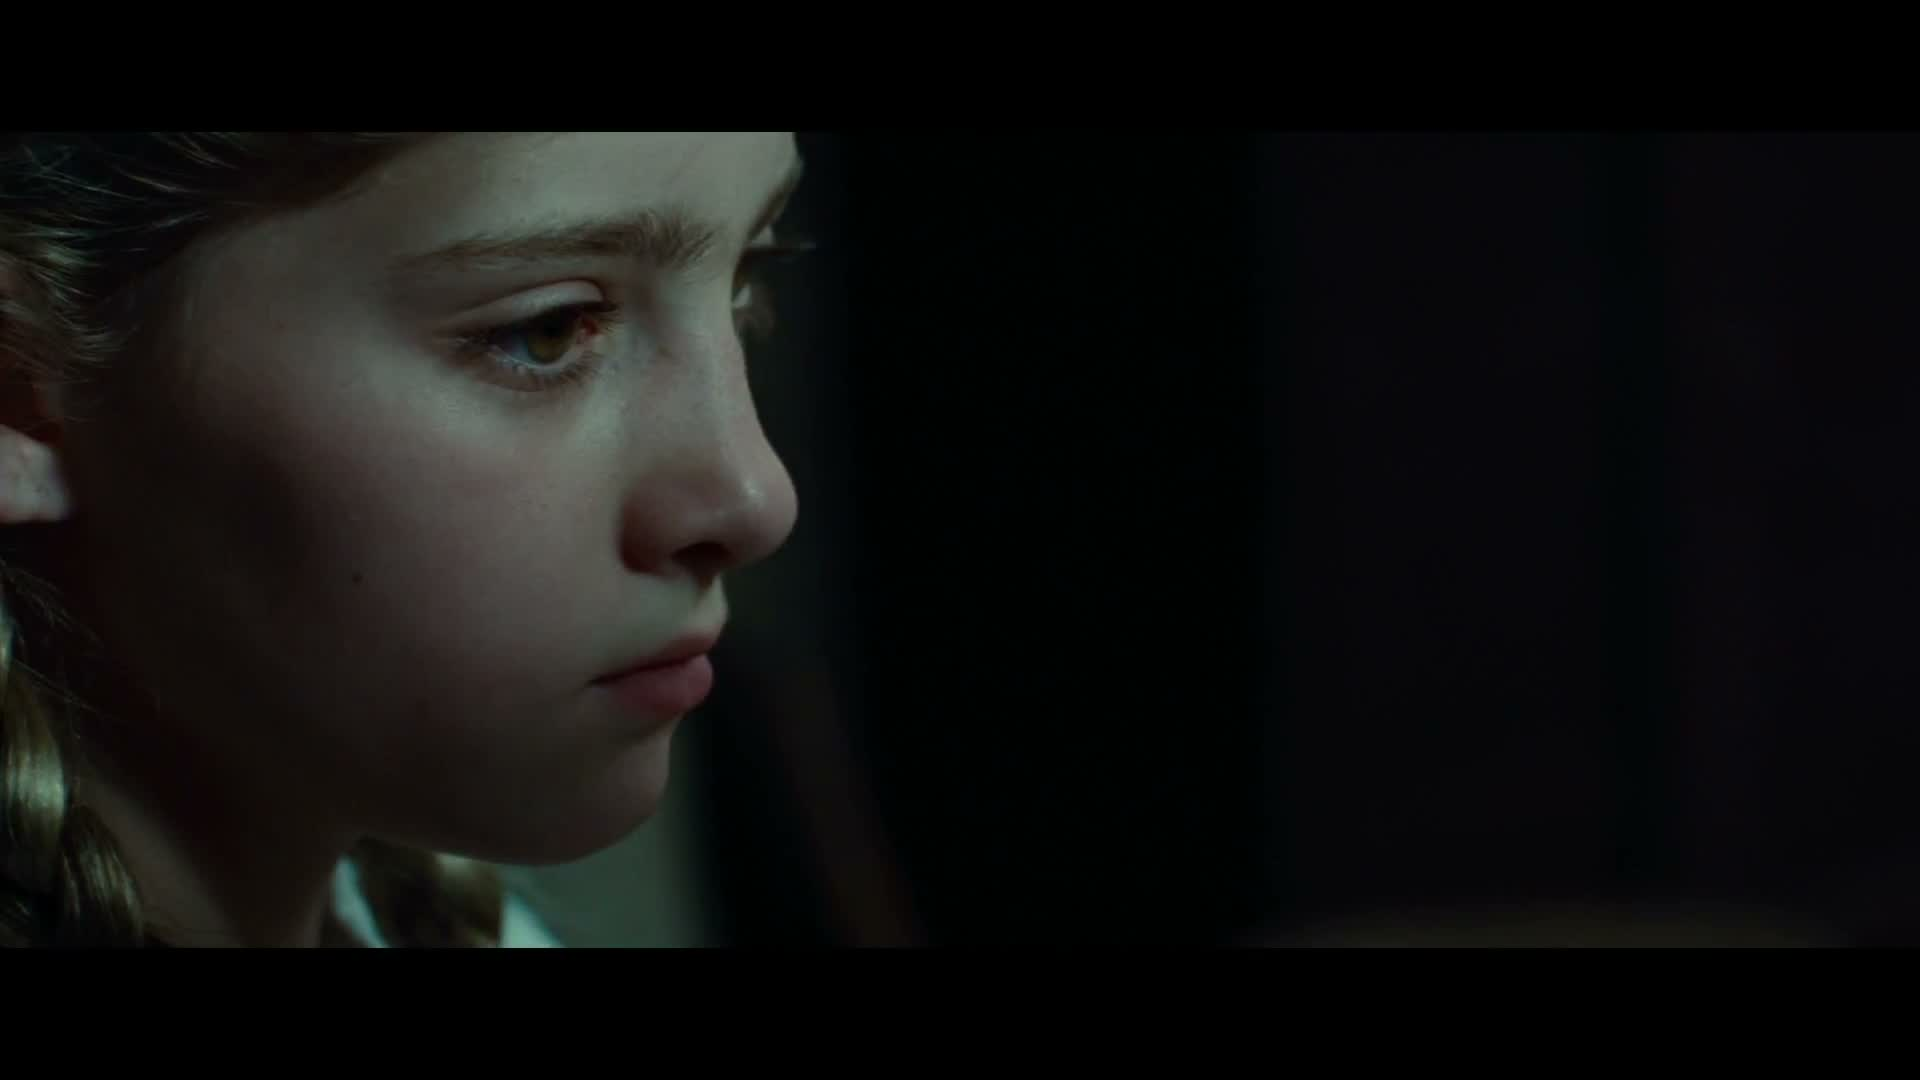 Primrose Everdeen images 'The Hunger Games' trailer #2 HD ...